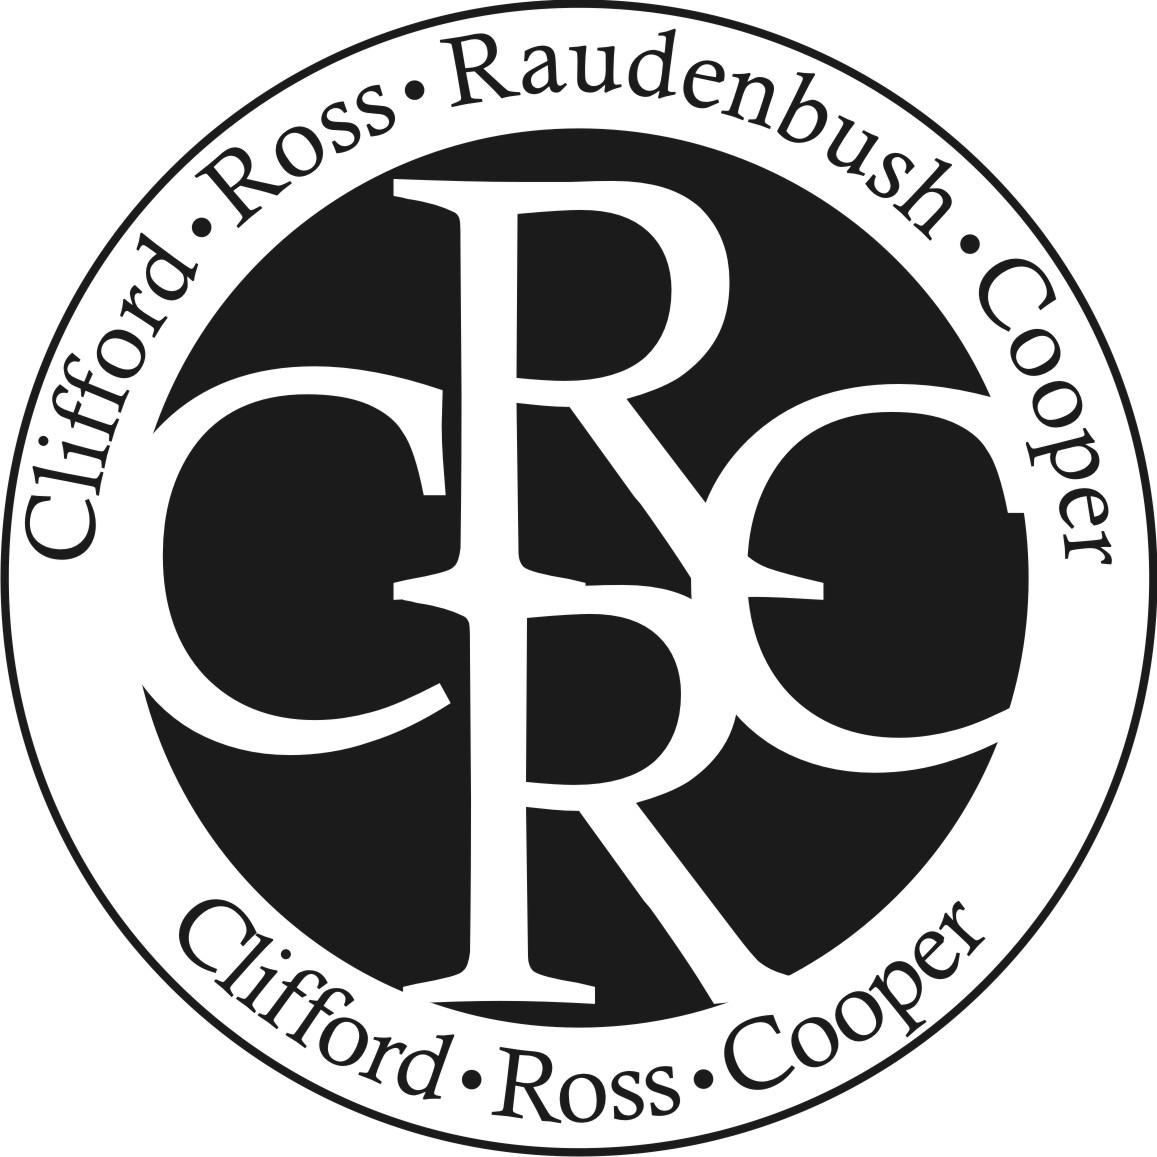 Clifford, Ross, Raudenbush and Cooper LLC